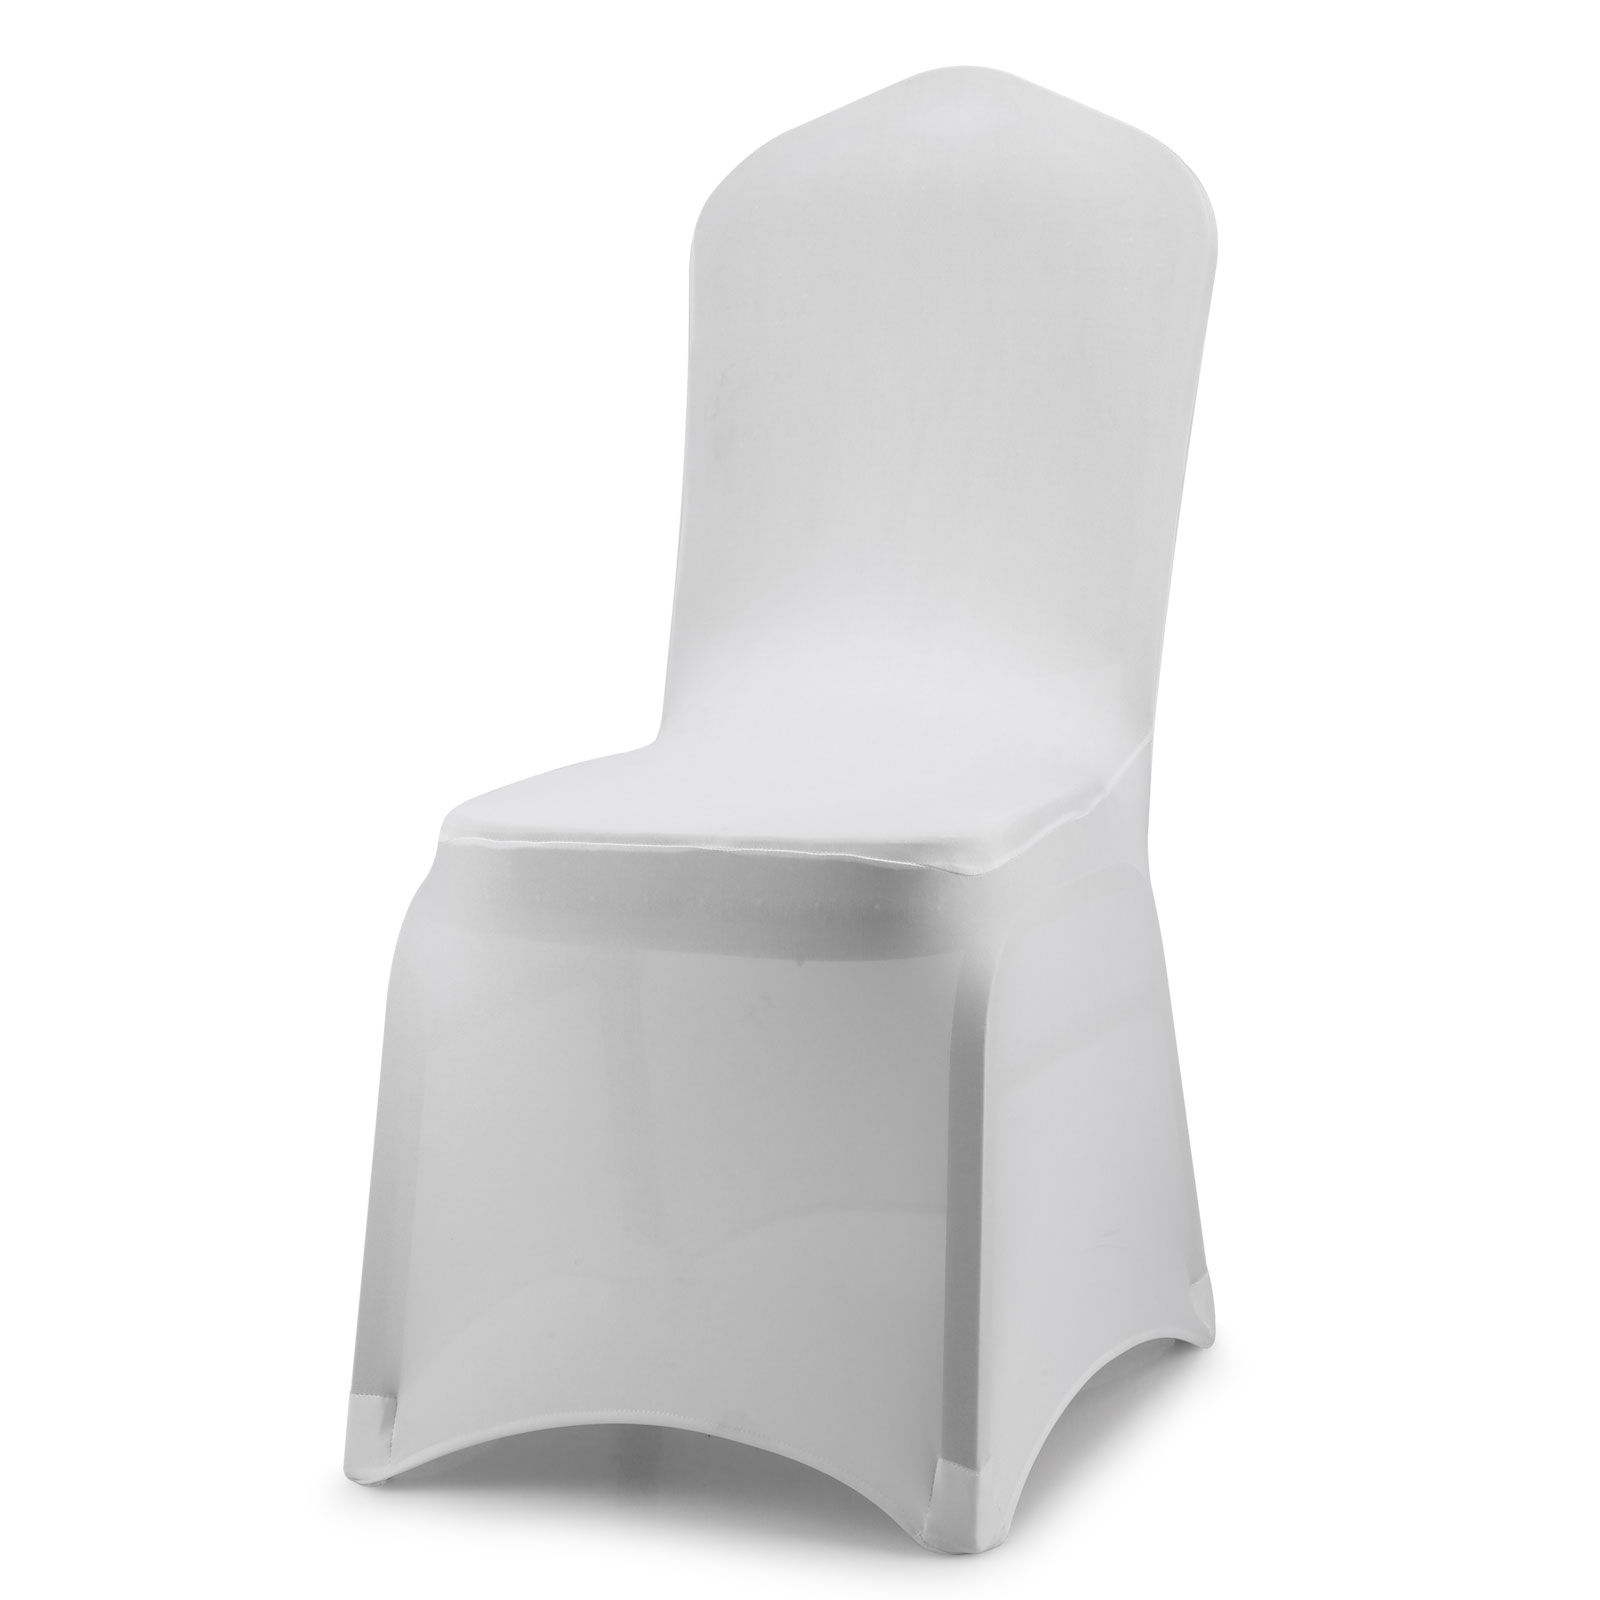 white chair sashes upside down on table universal polyester spandex folding covers